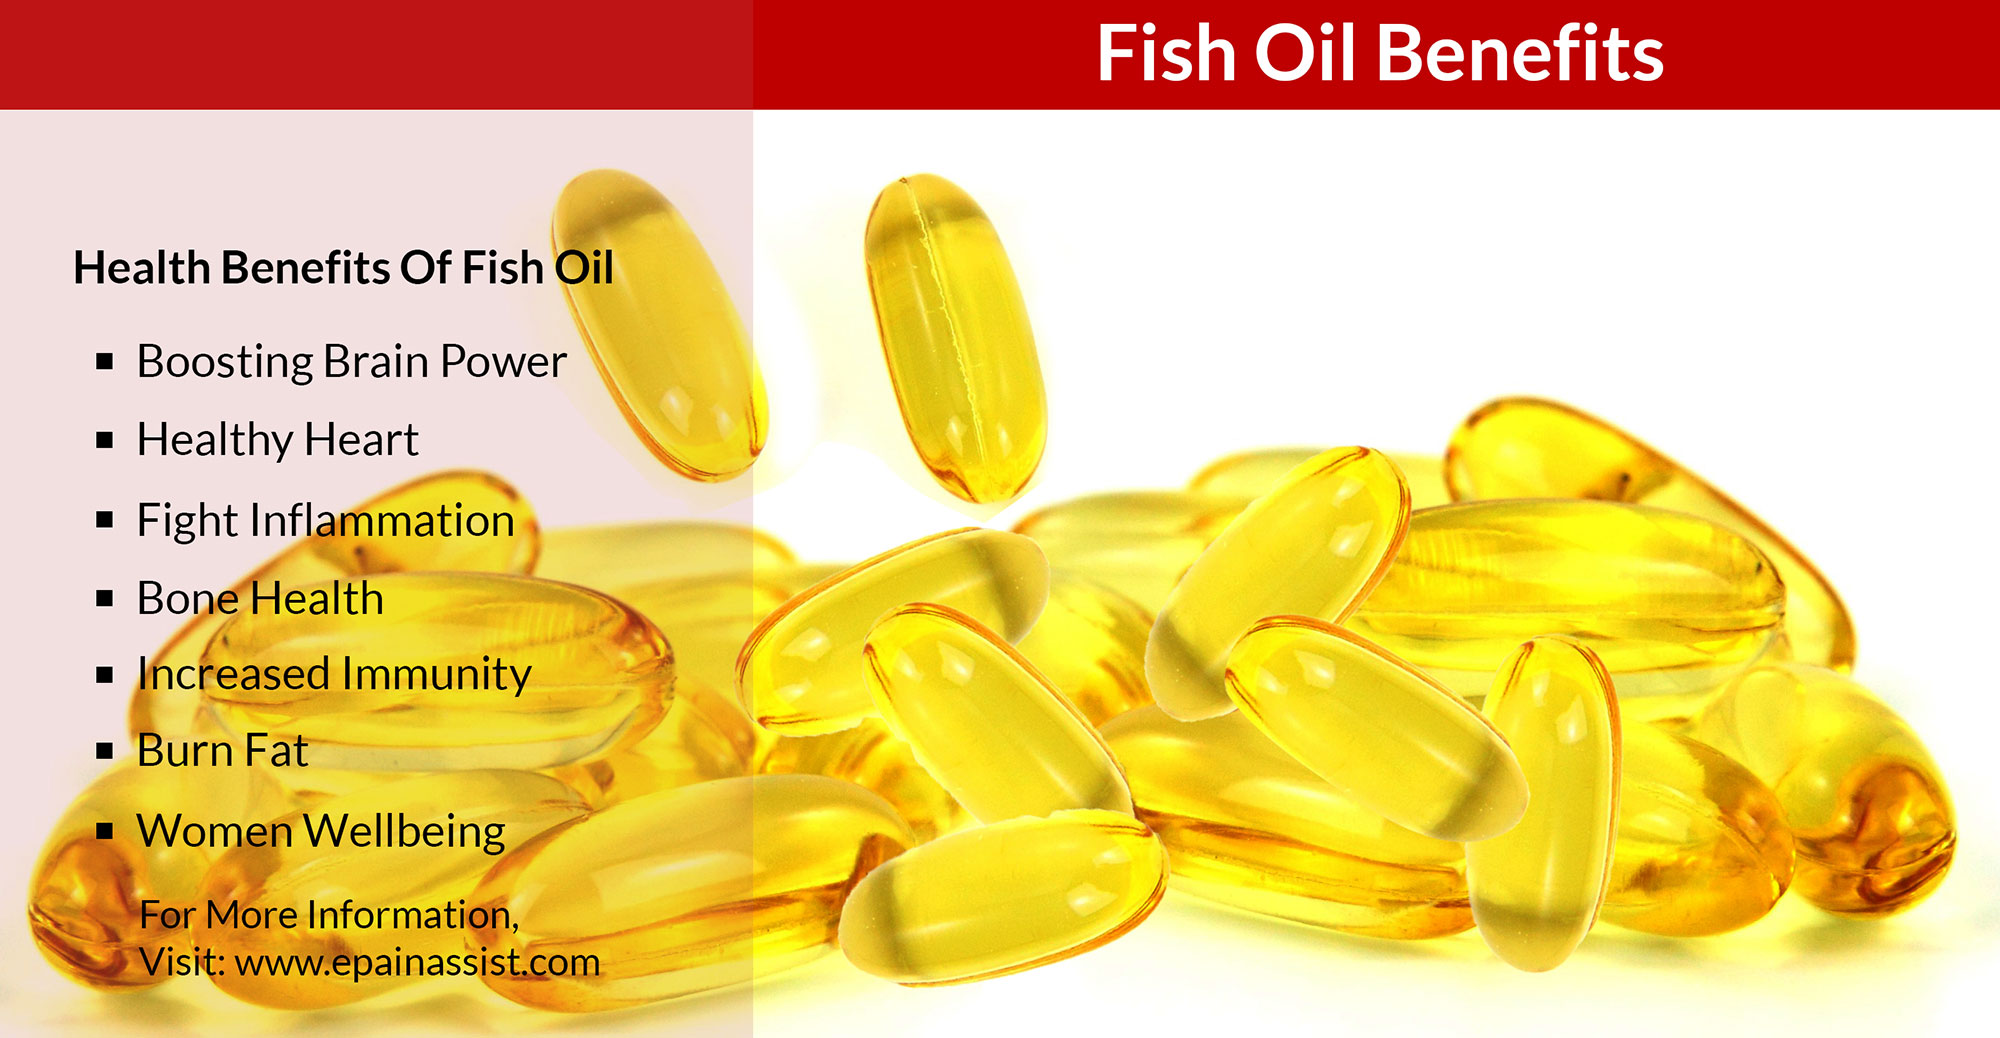 fish oil benefits|boosts brain power|healthy heart|fights